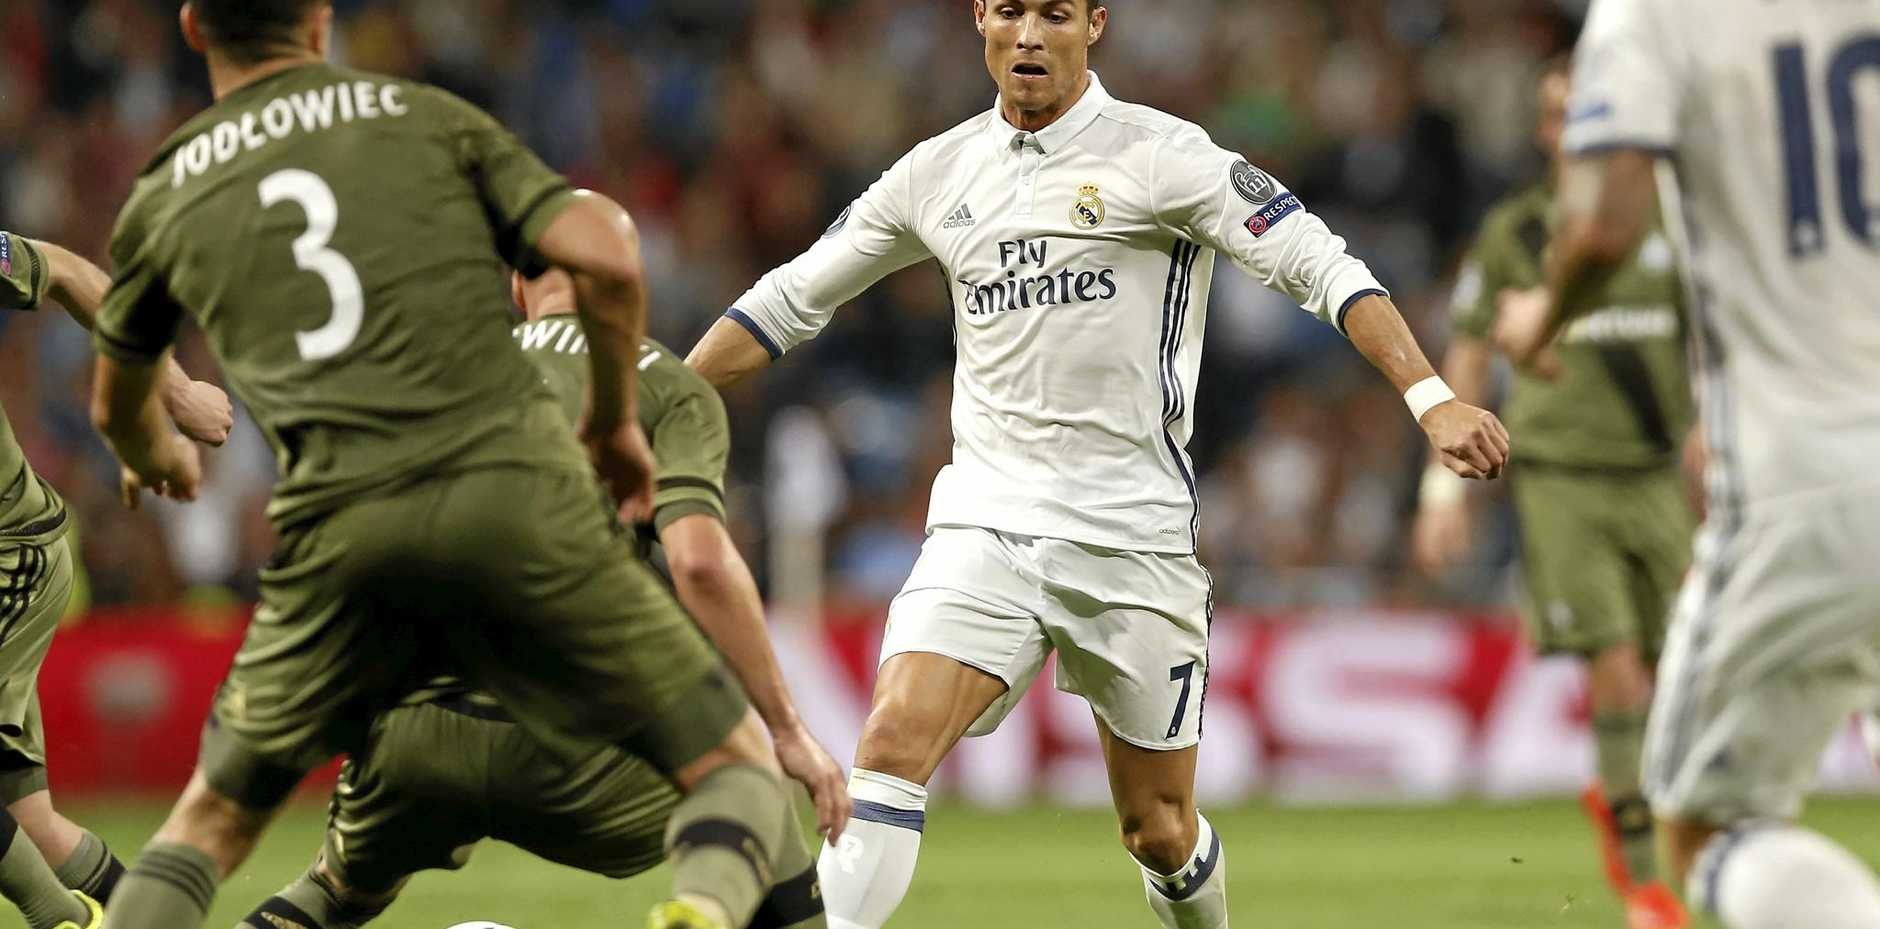 Real Madrid's Cristiano Ronaldo fights for the ball during a Champions League Group F soccer match between against Legia Warsaw at the Santiago Bernabeu stadium in Madrid.